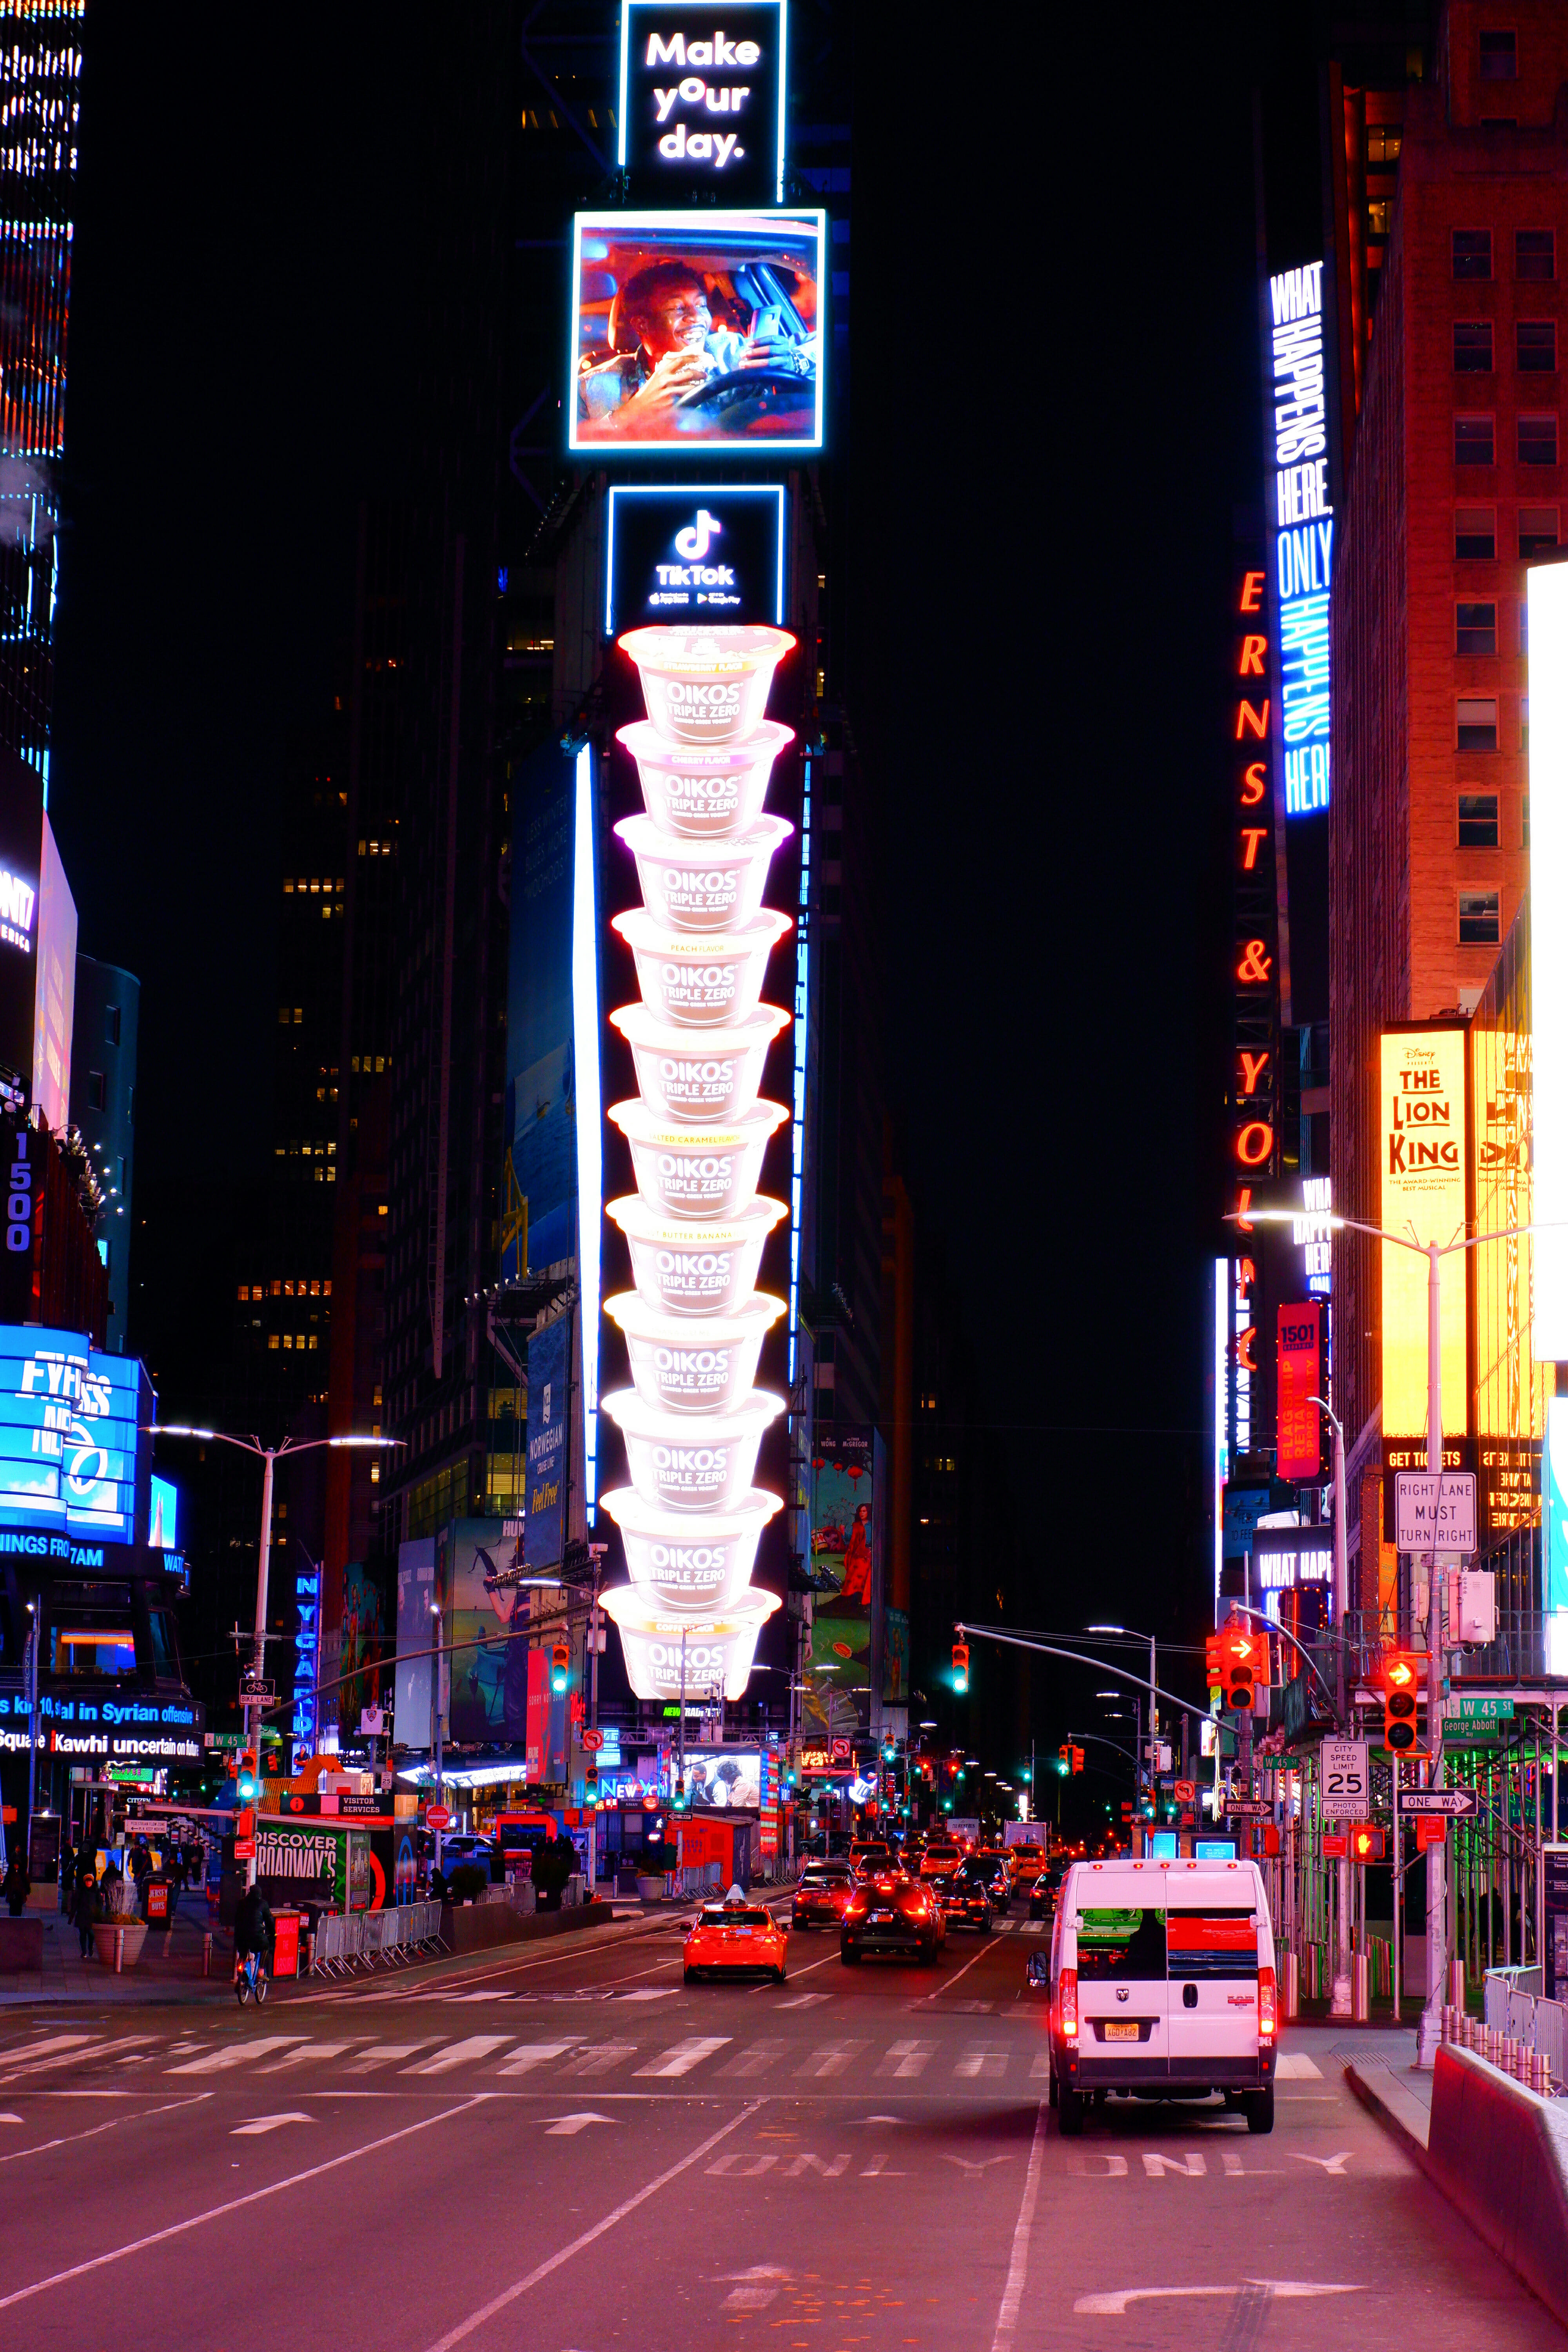 Times Square at Night High Quality Wallpaper